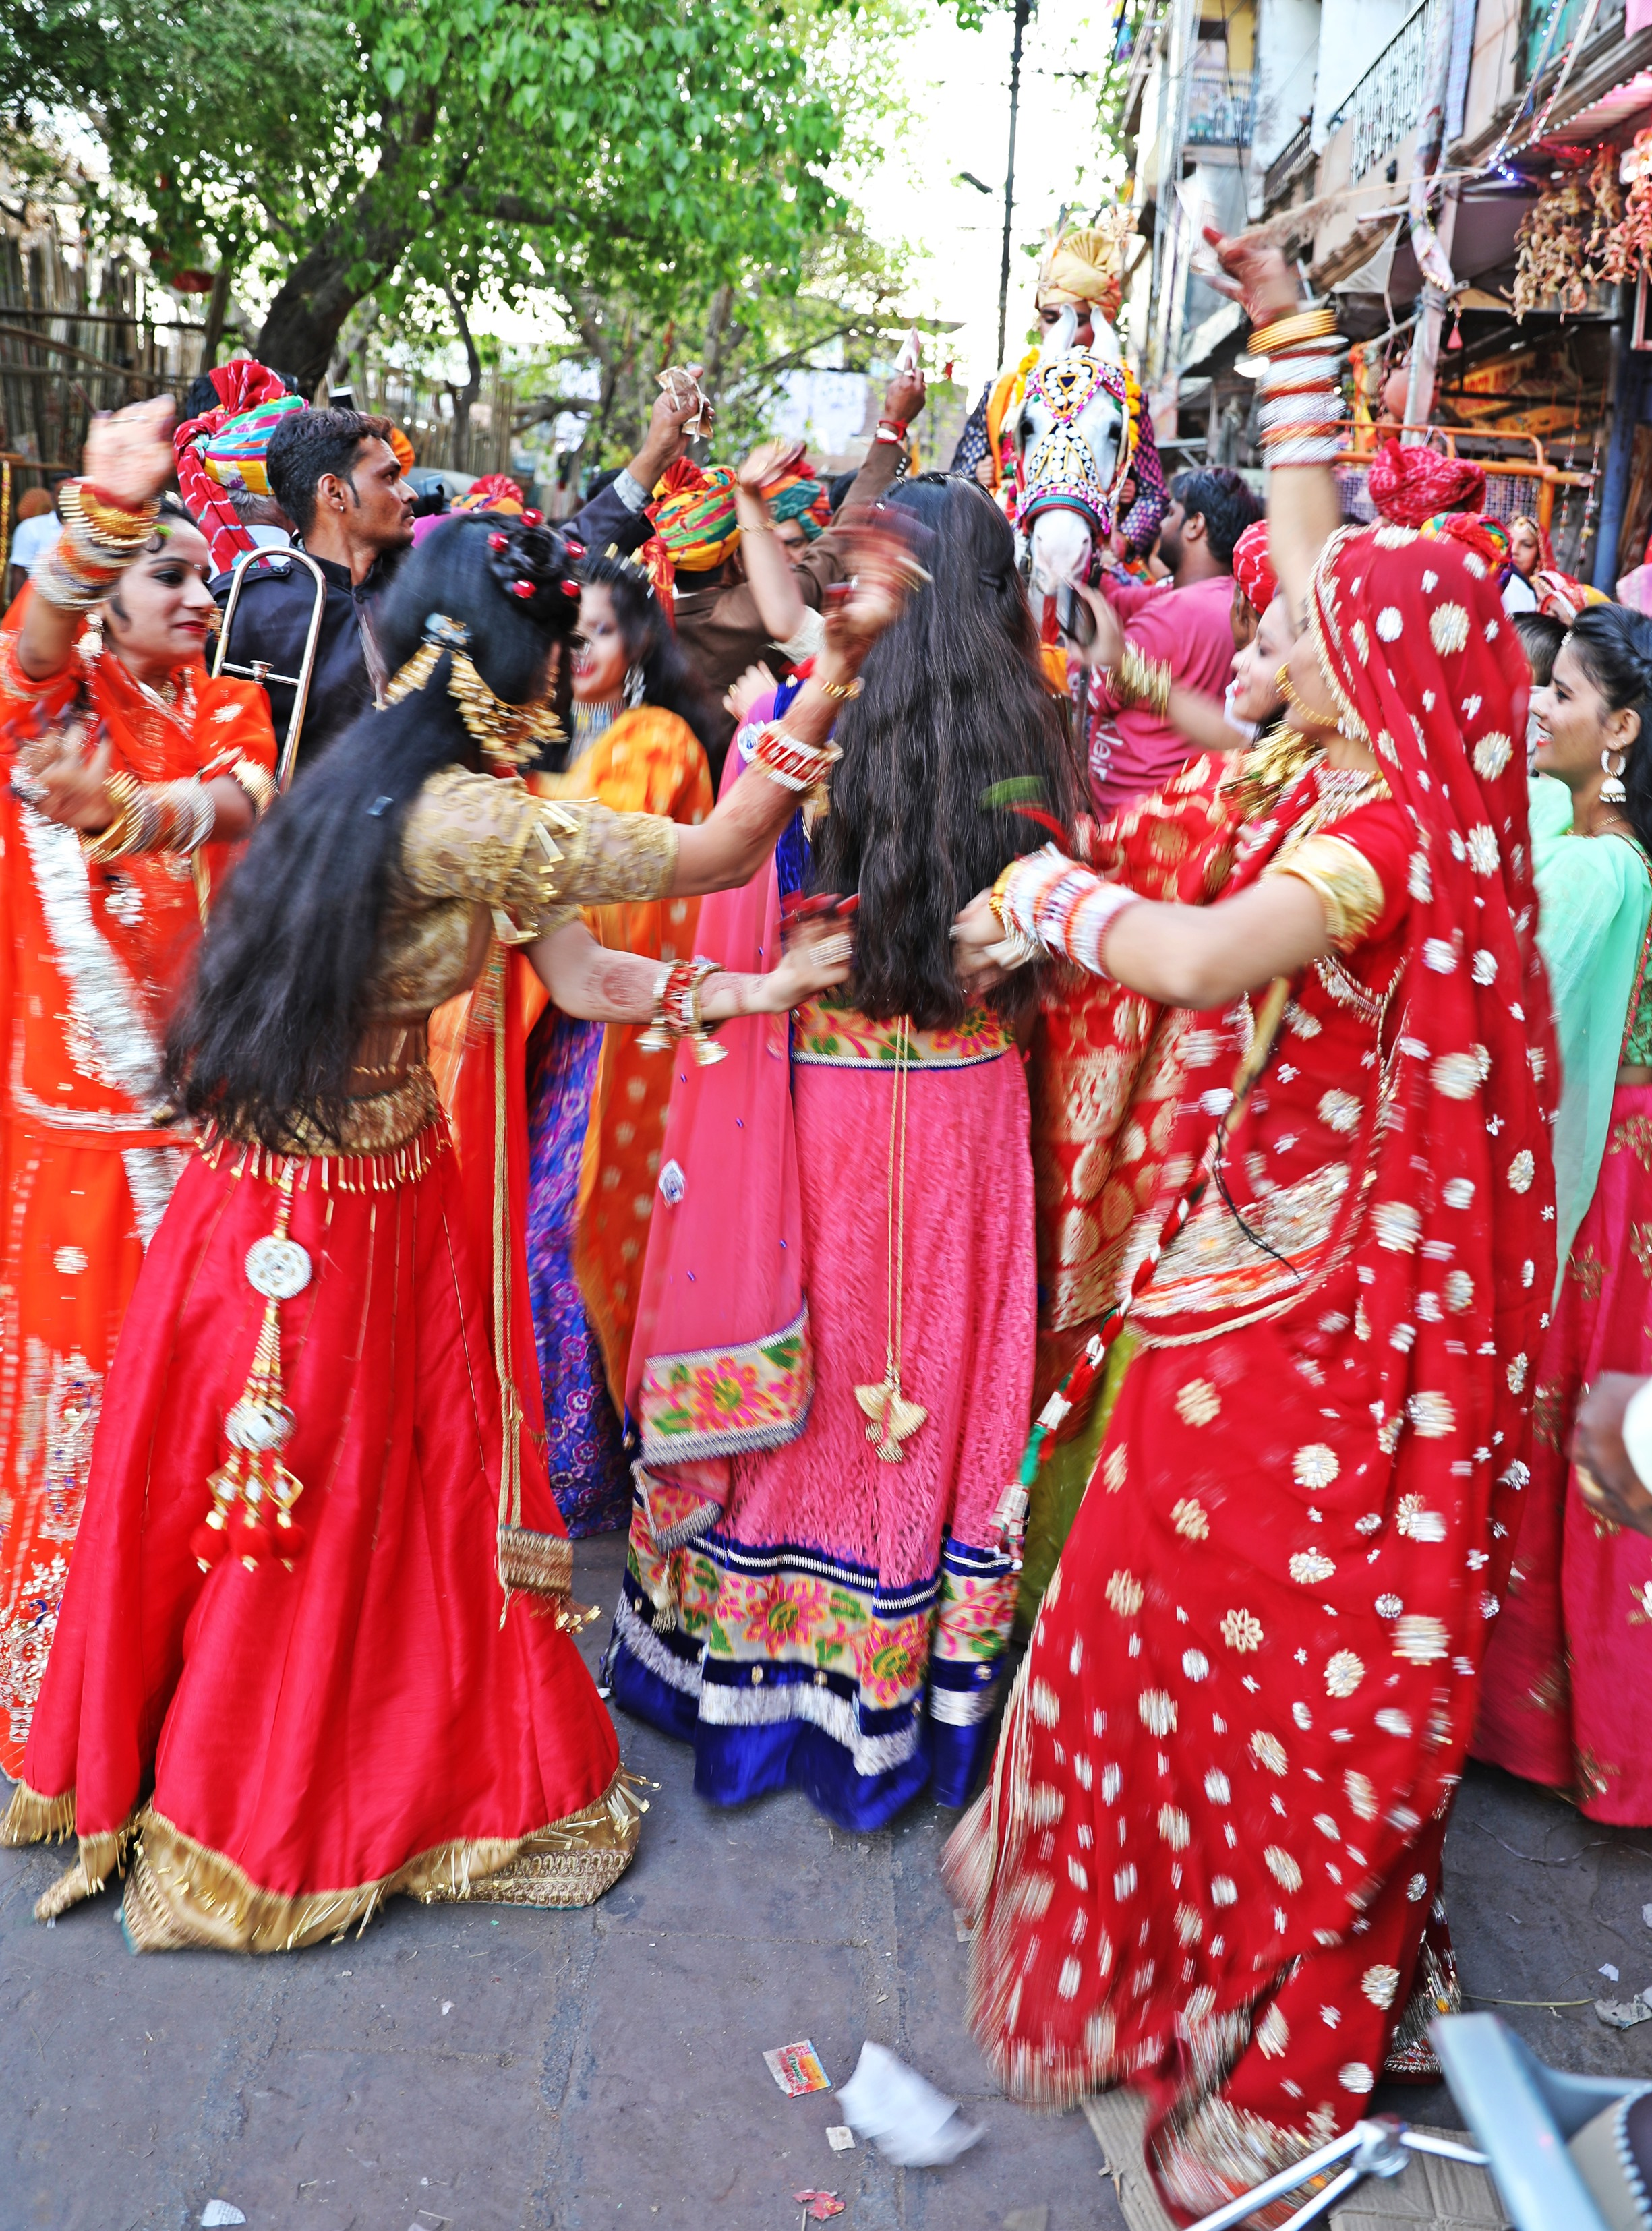 Women dancing in front of the groom on horseback, Jodhpur